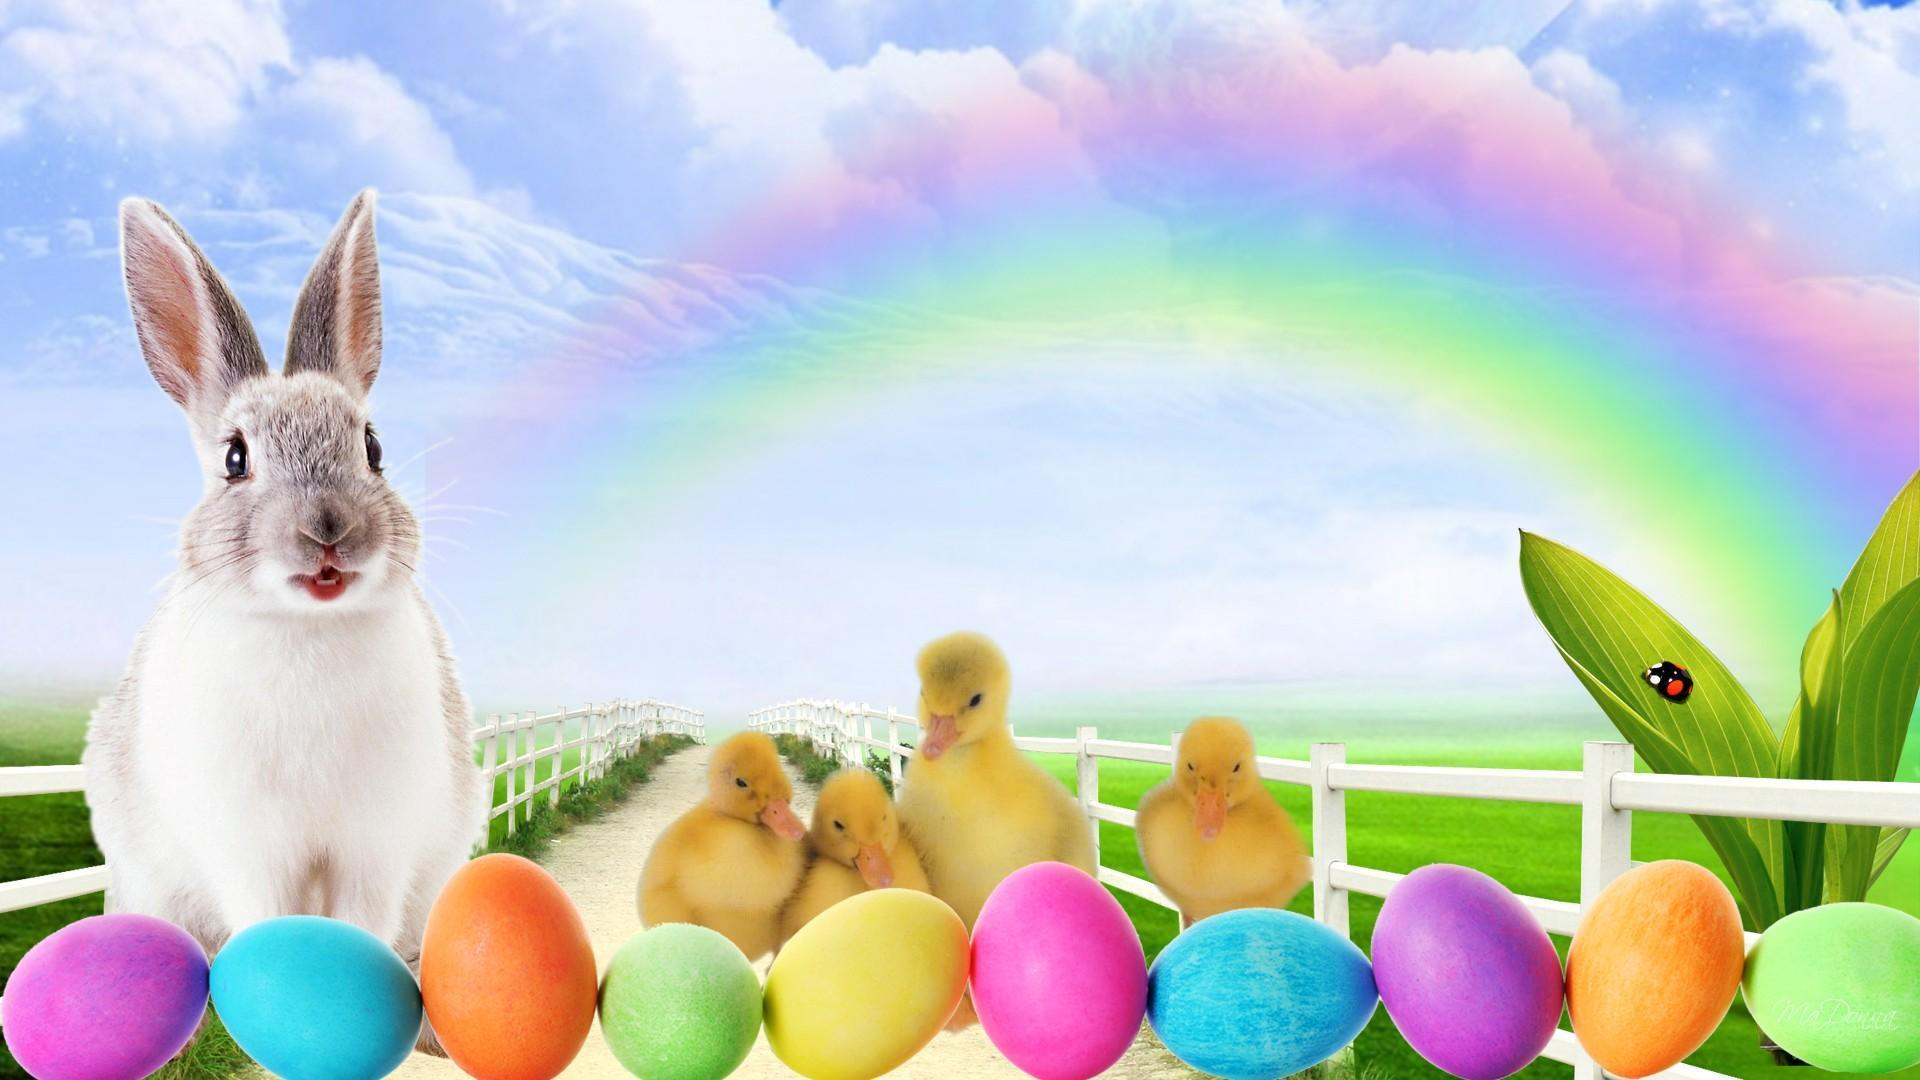 35 Easter Bunny Wallpapers   Download at WallpaperBro 1920x1080